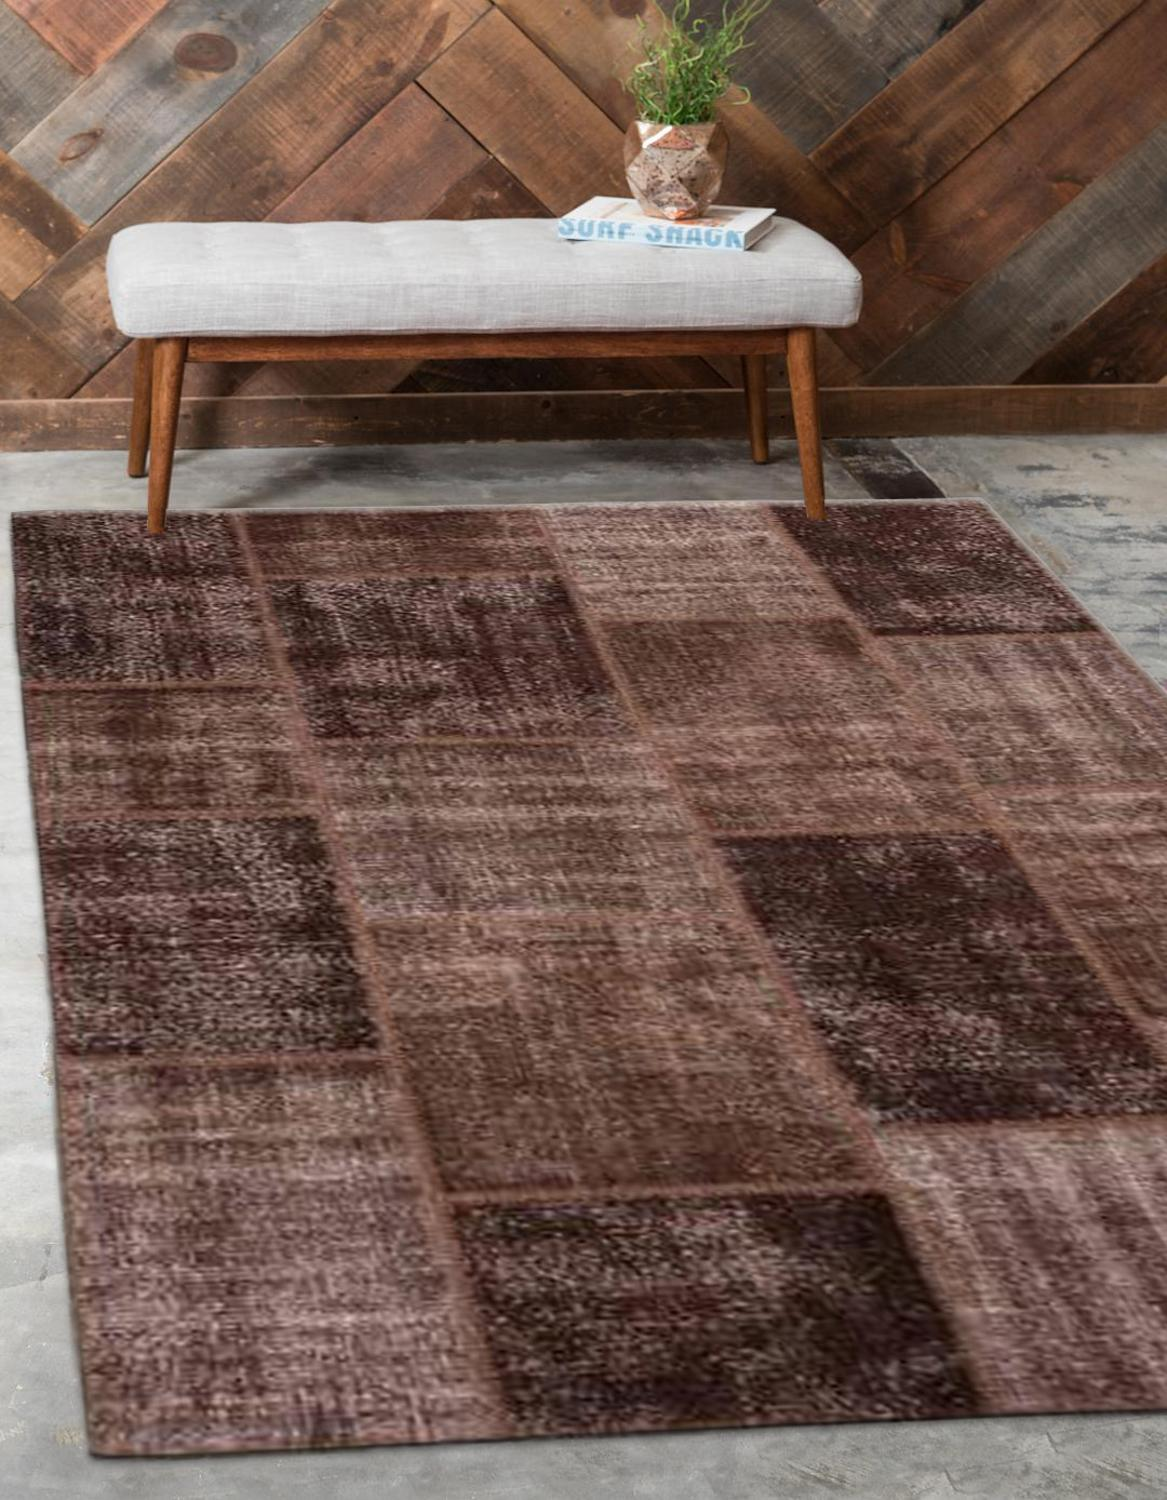 Else Brown Anatolian Patchwork Rug Turkish Handmade Organic Area Rug Decorative Home Decor Wool Patchwork Rug Carpet